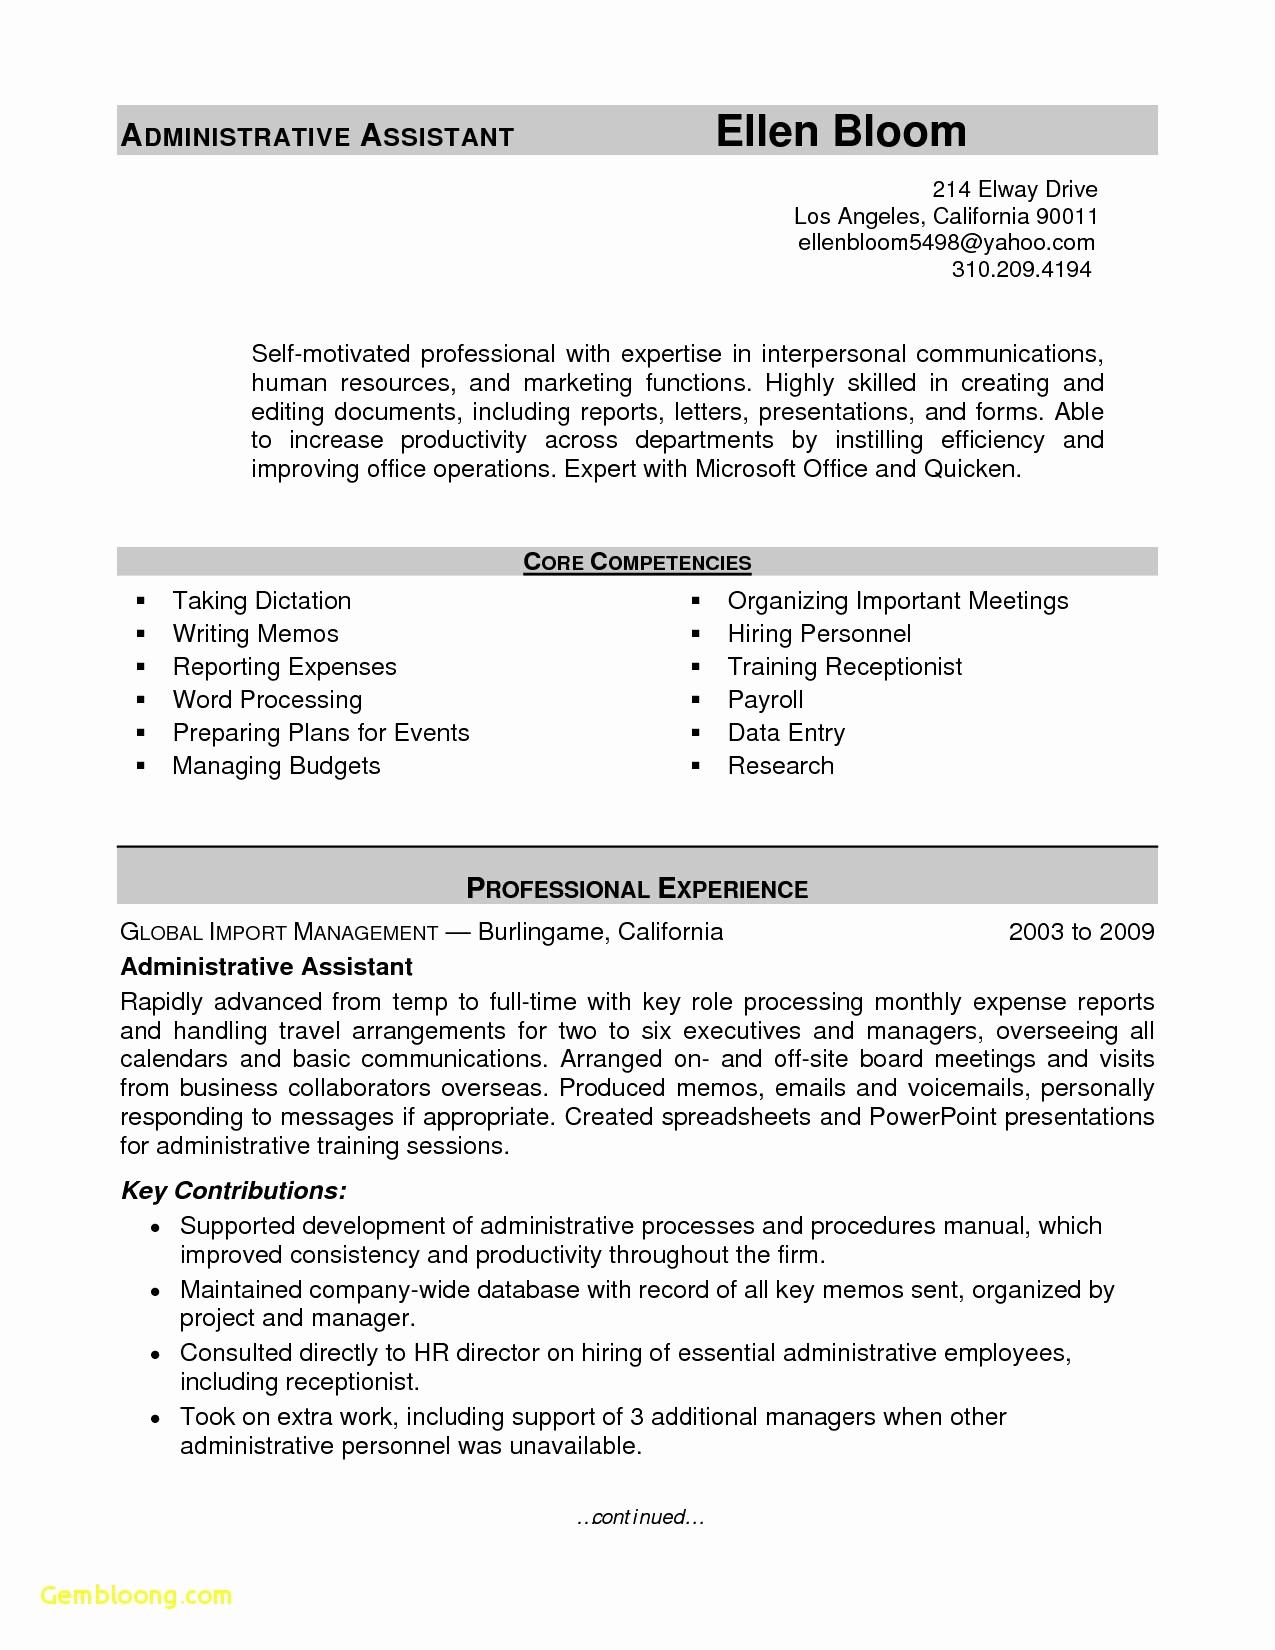 human resources manager resume template example-Resume Sample for Hr Manager Elegant Hr Manager Resume New American Resume Sample New Student Resume 0d 9-e